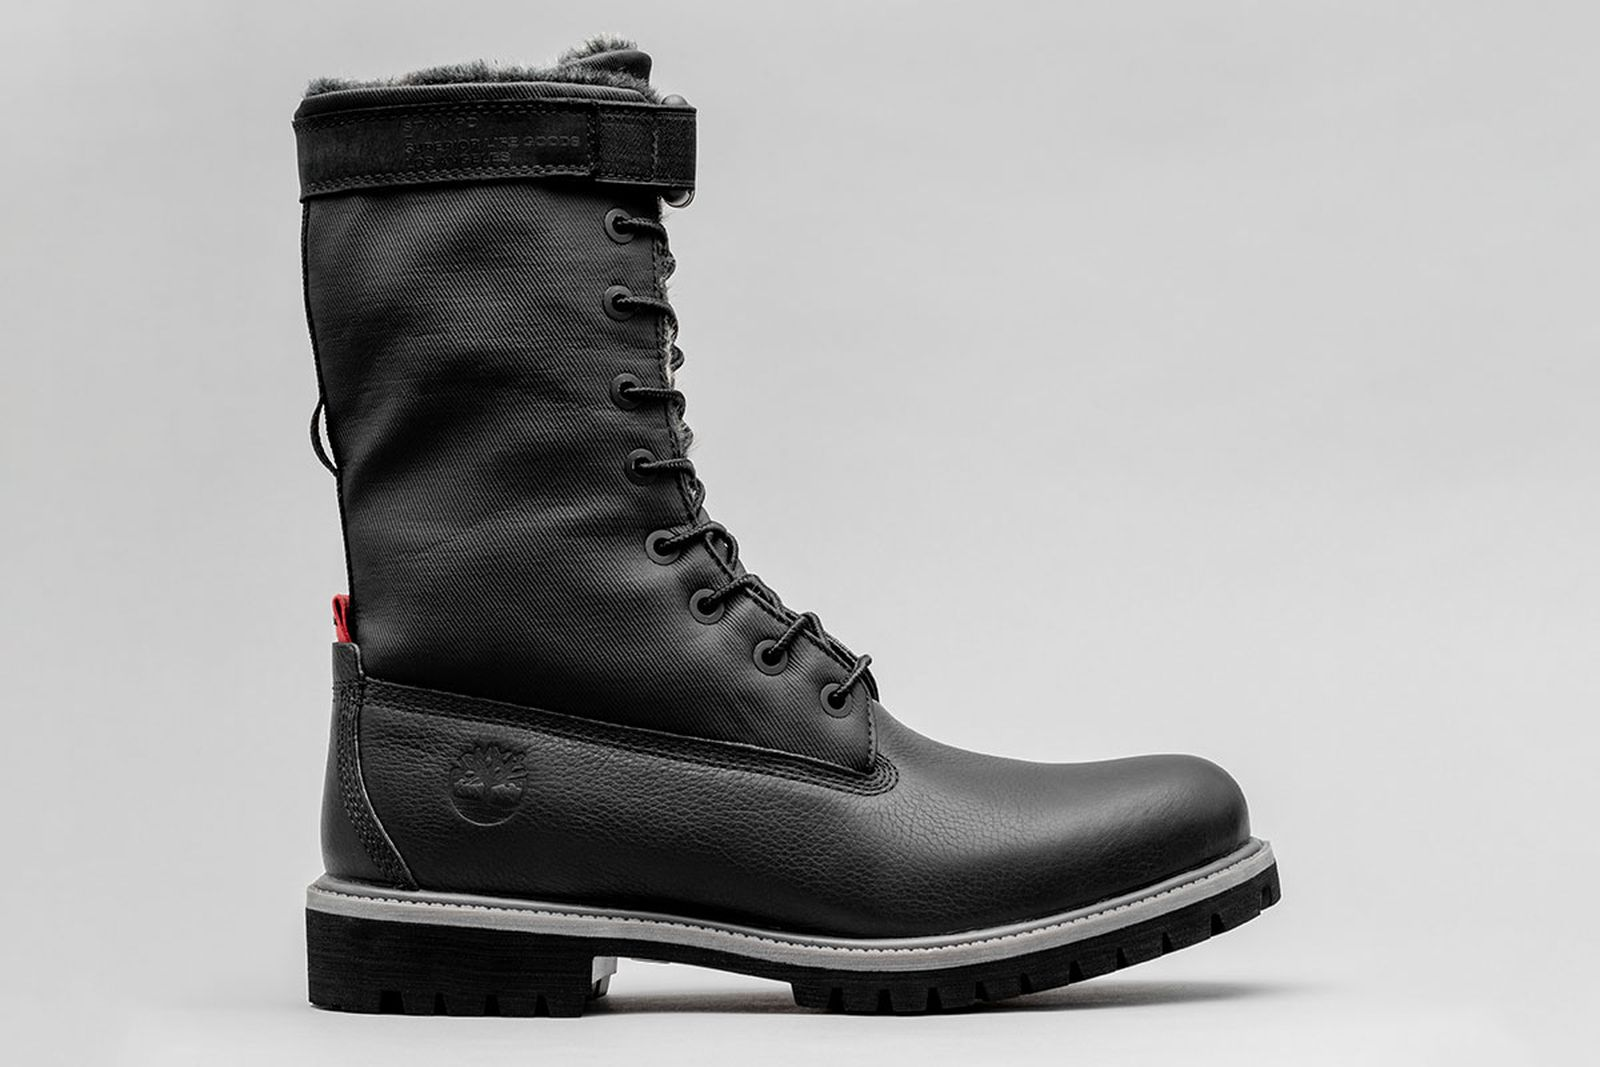 STAMPD Timberland gaiter boot release date priceSTAMPD Timberland gaiter boot release date price